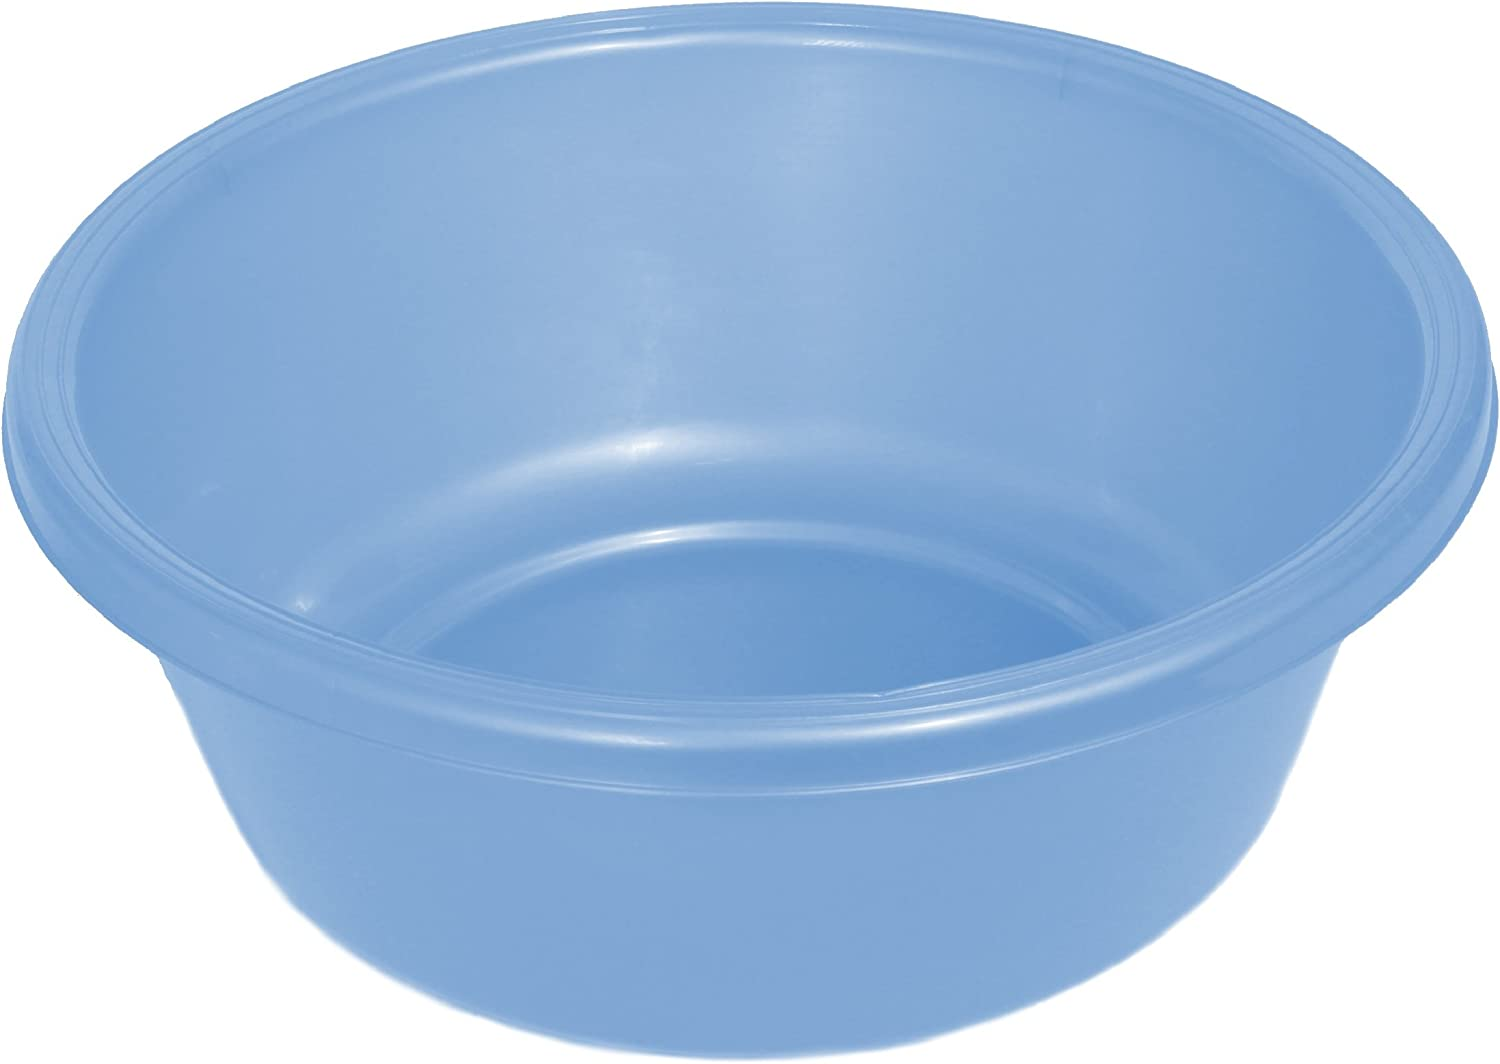 "YBM HOME Round Plastic Wash Basin (1148 11.25"", Light Blue)"